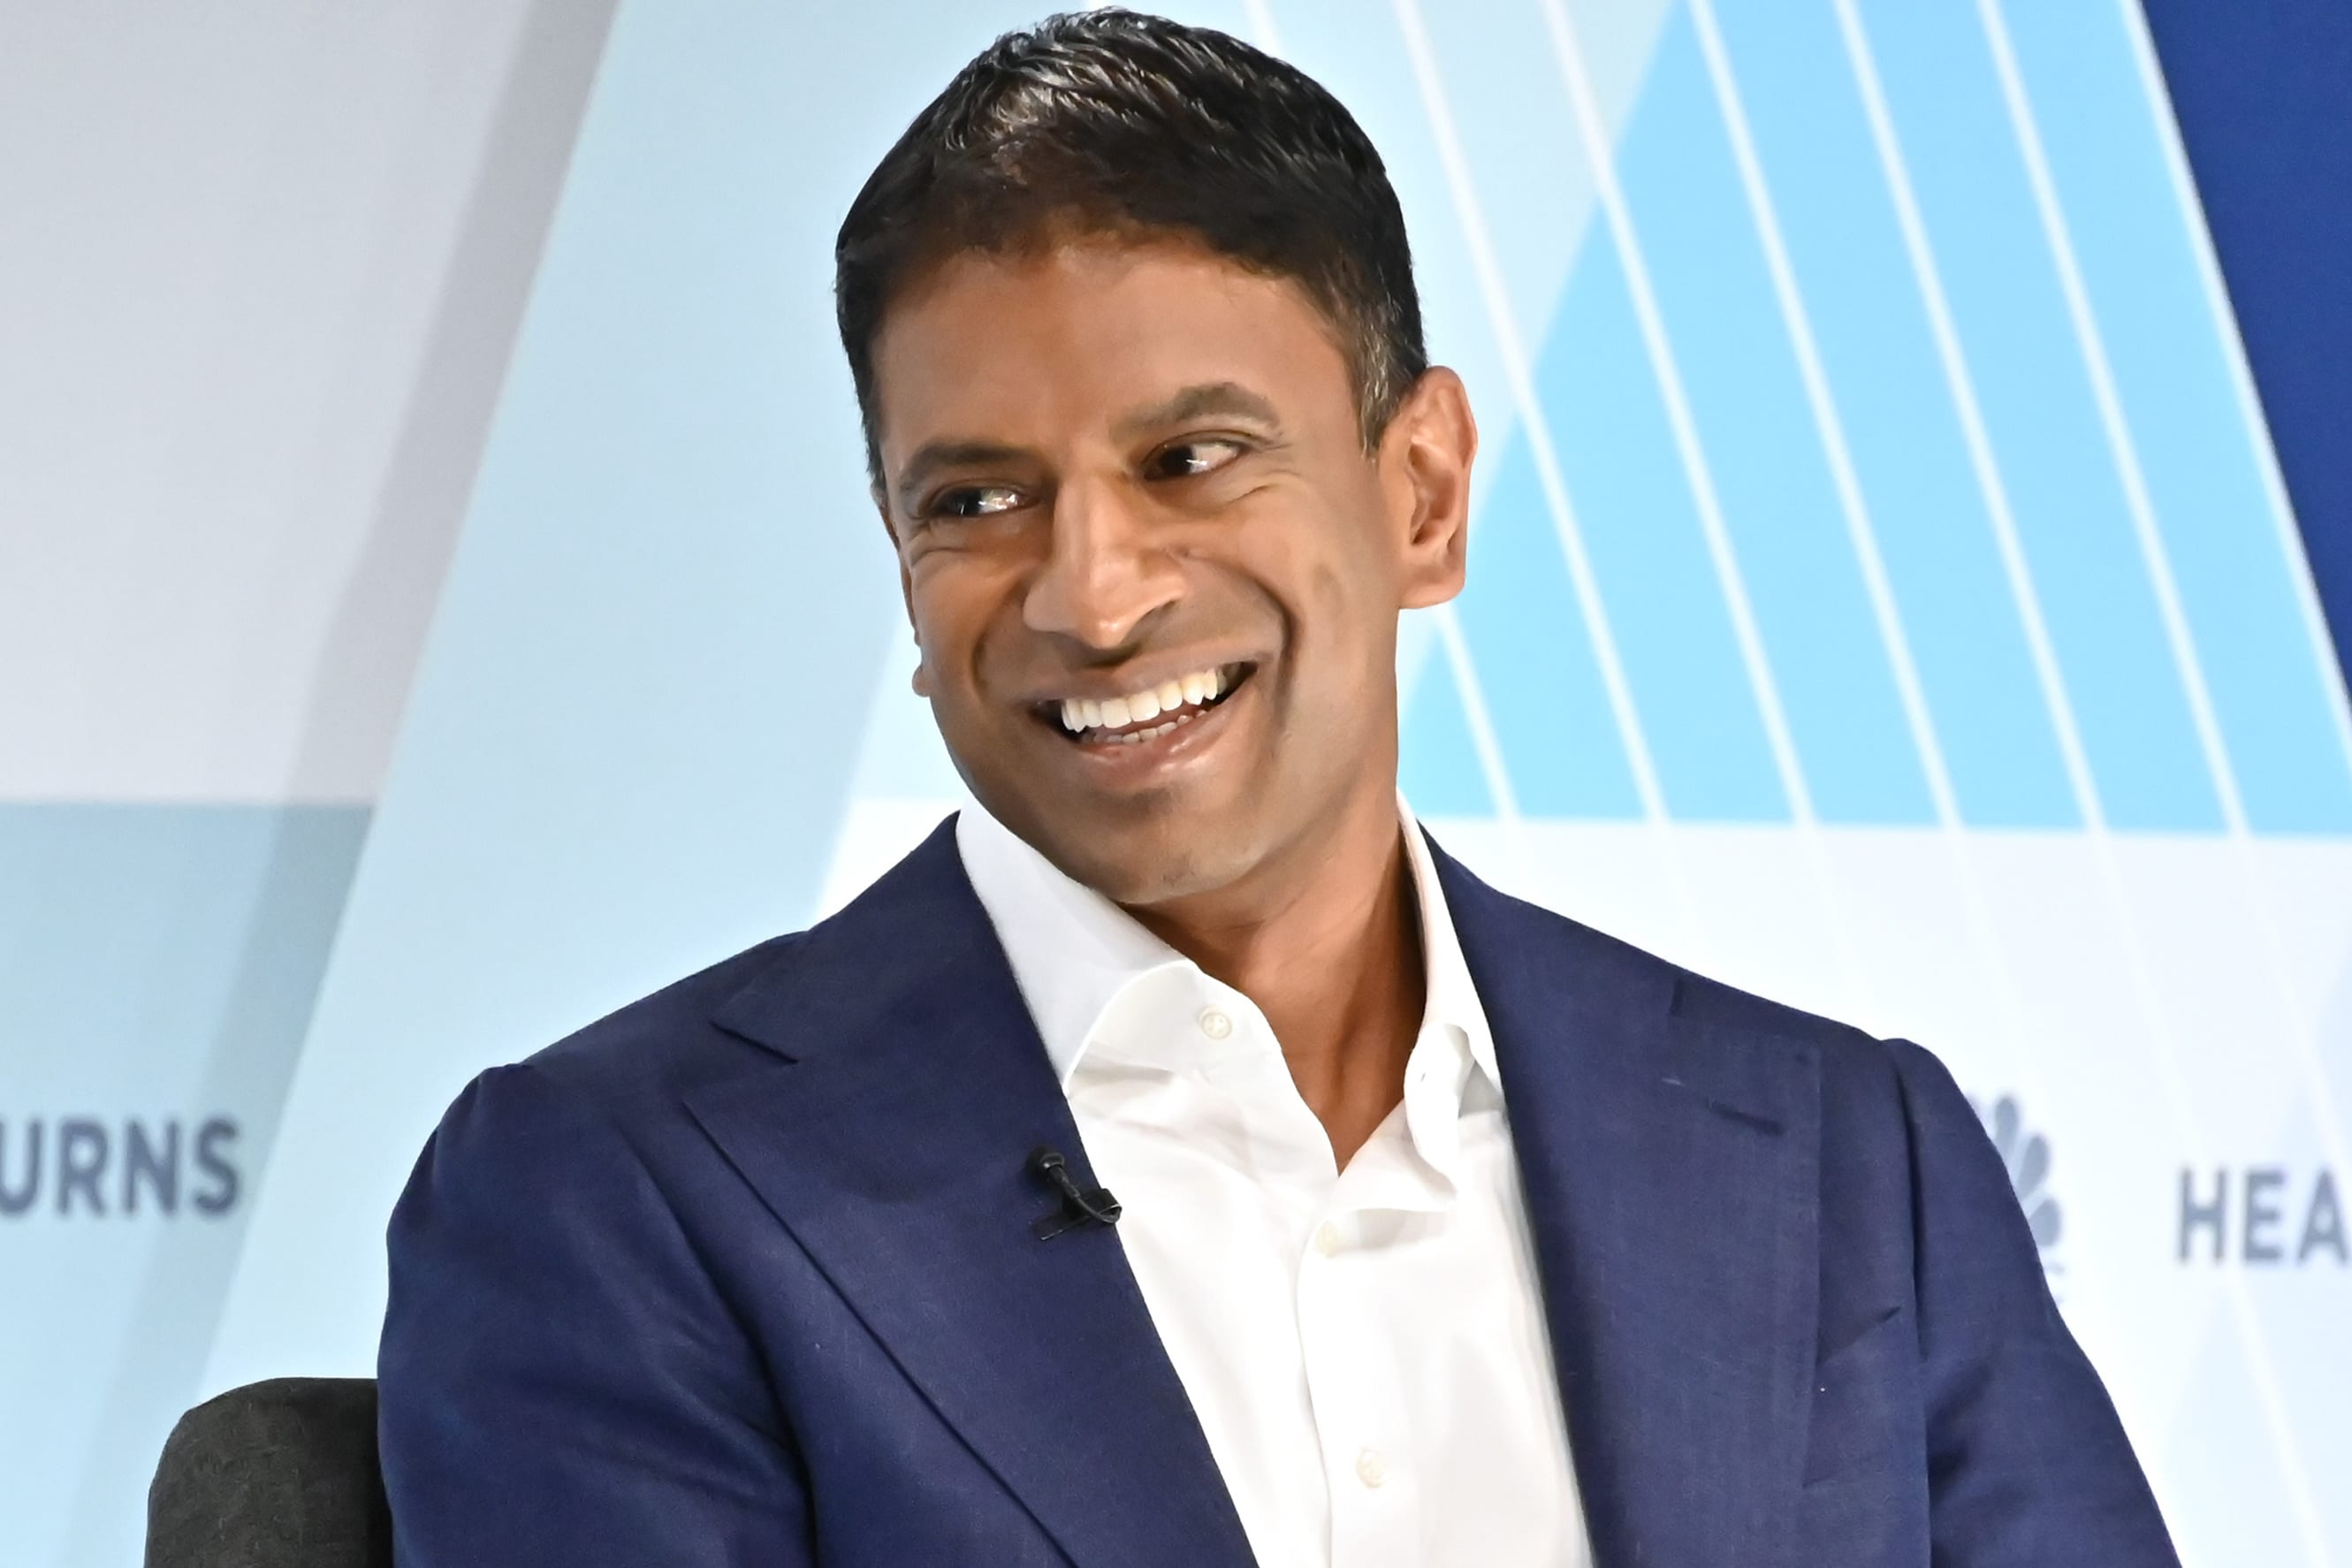 Dr. Vasant Narasimhan, CEO of Novartis, speaking at the Healthy Returns conference in New York City on May 21, 2019.